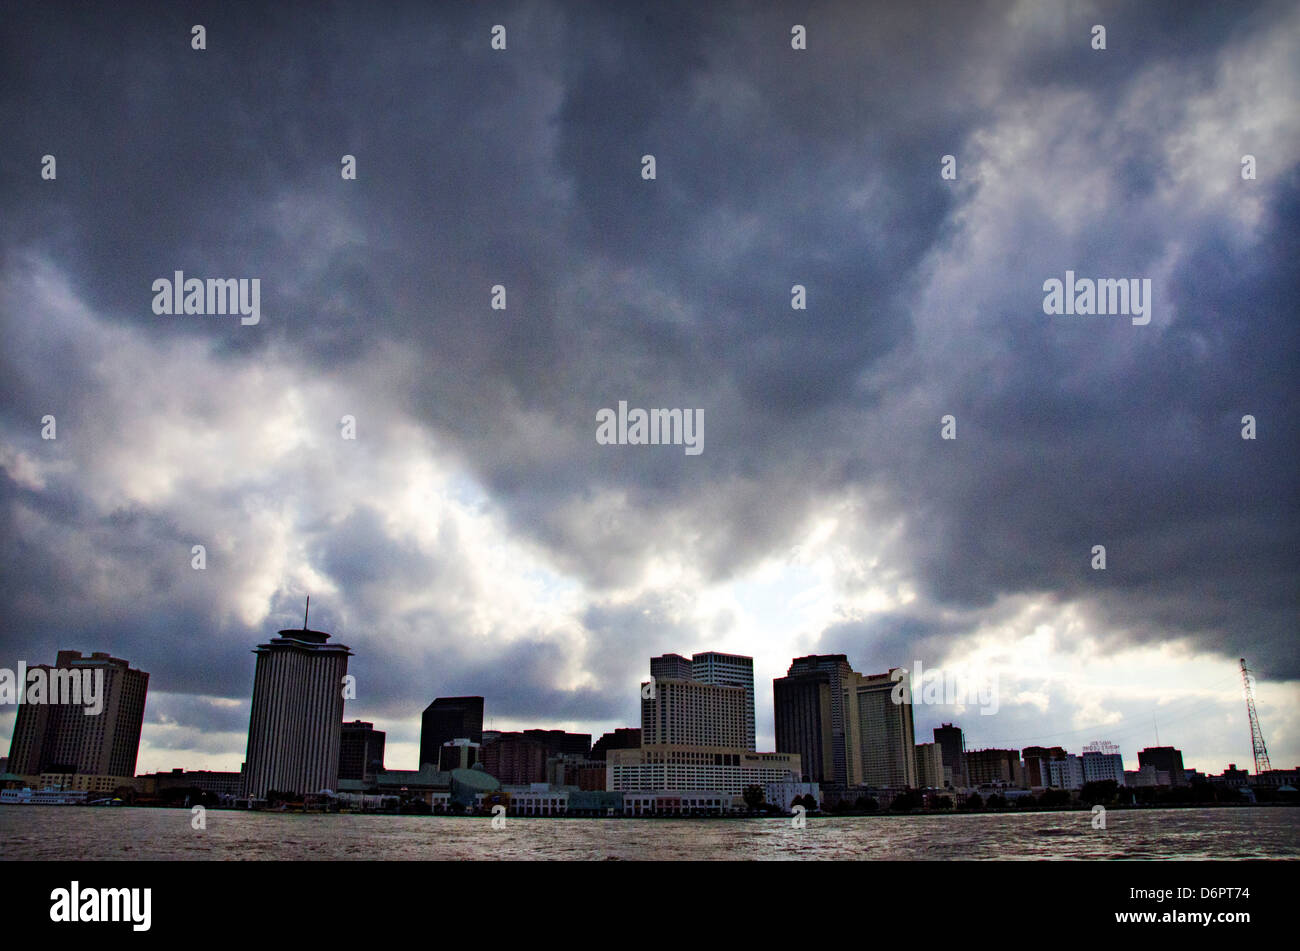 City Skyline Viewed Algiers Point During An Extremely High